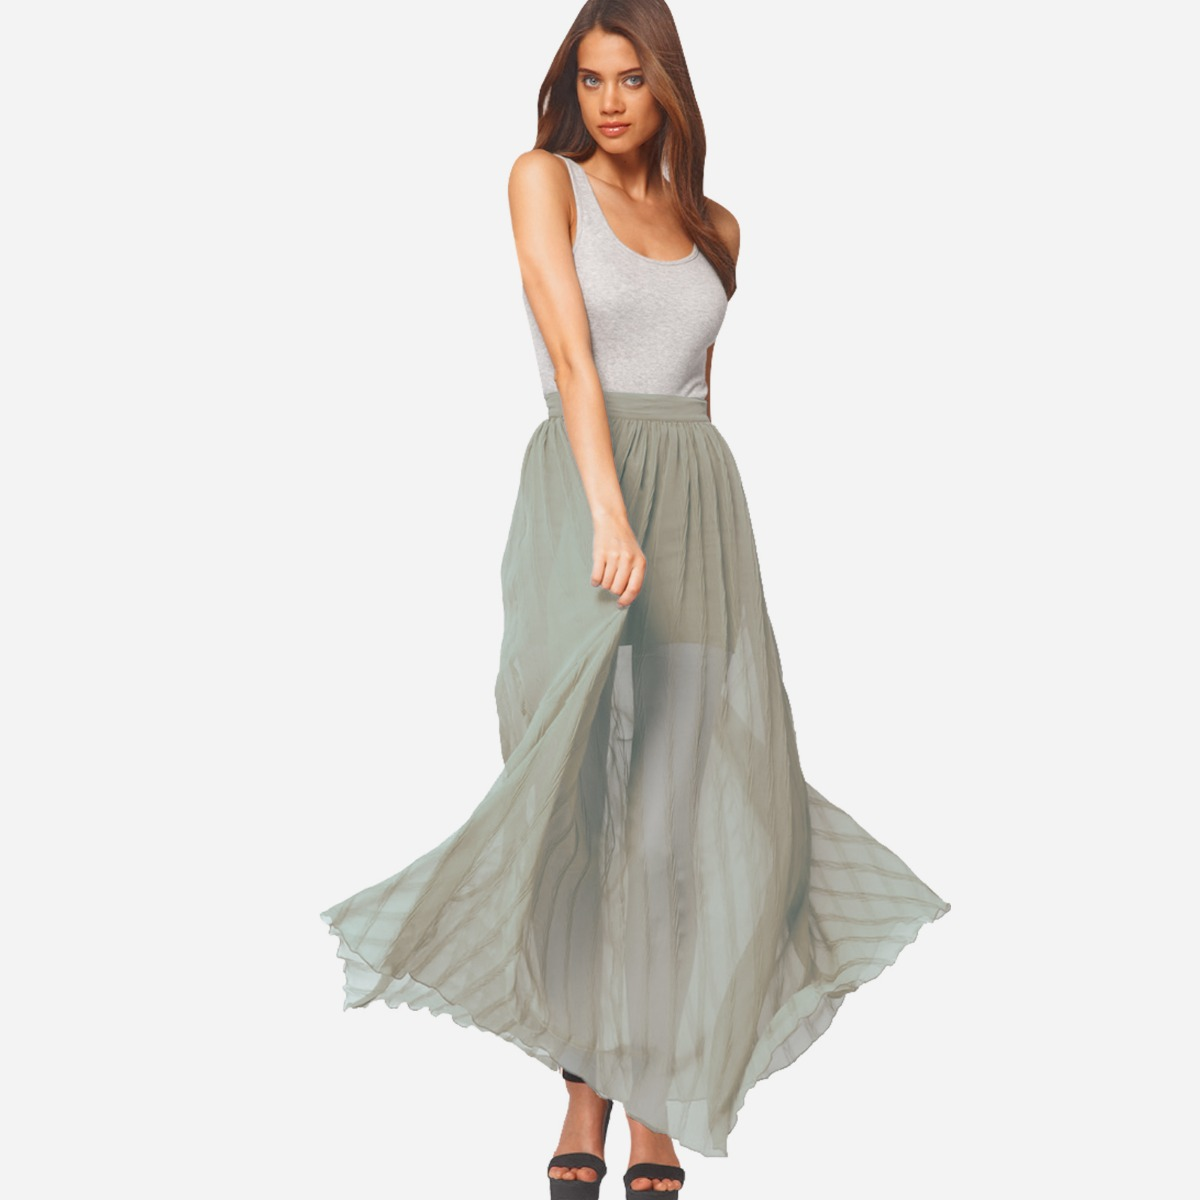 2019 hot sale pretty nice great prices Details about ASOS Ladies Womens Pleated Maxi Skirt Full Length Elasticated  Waist Size UK 8-18